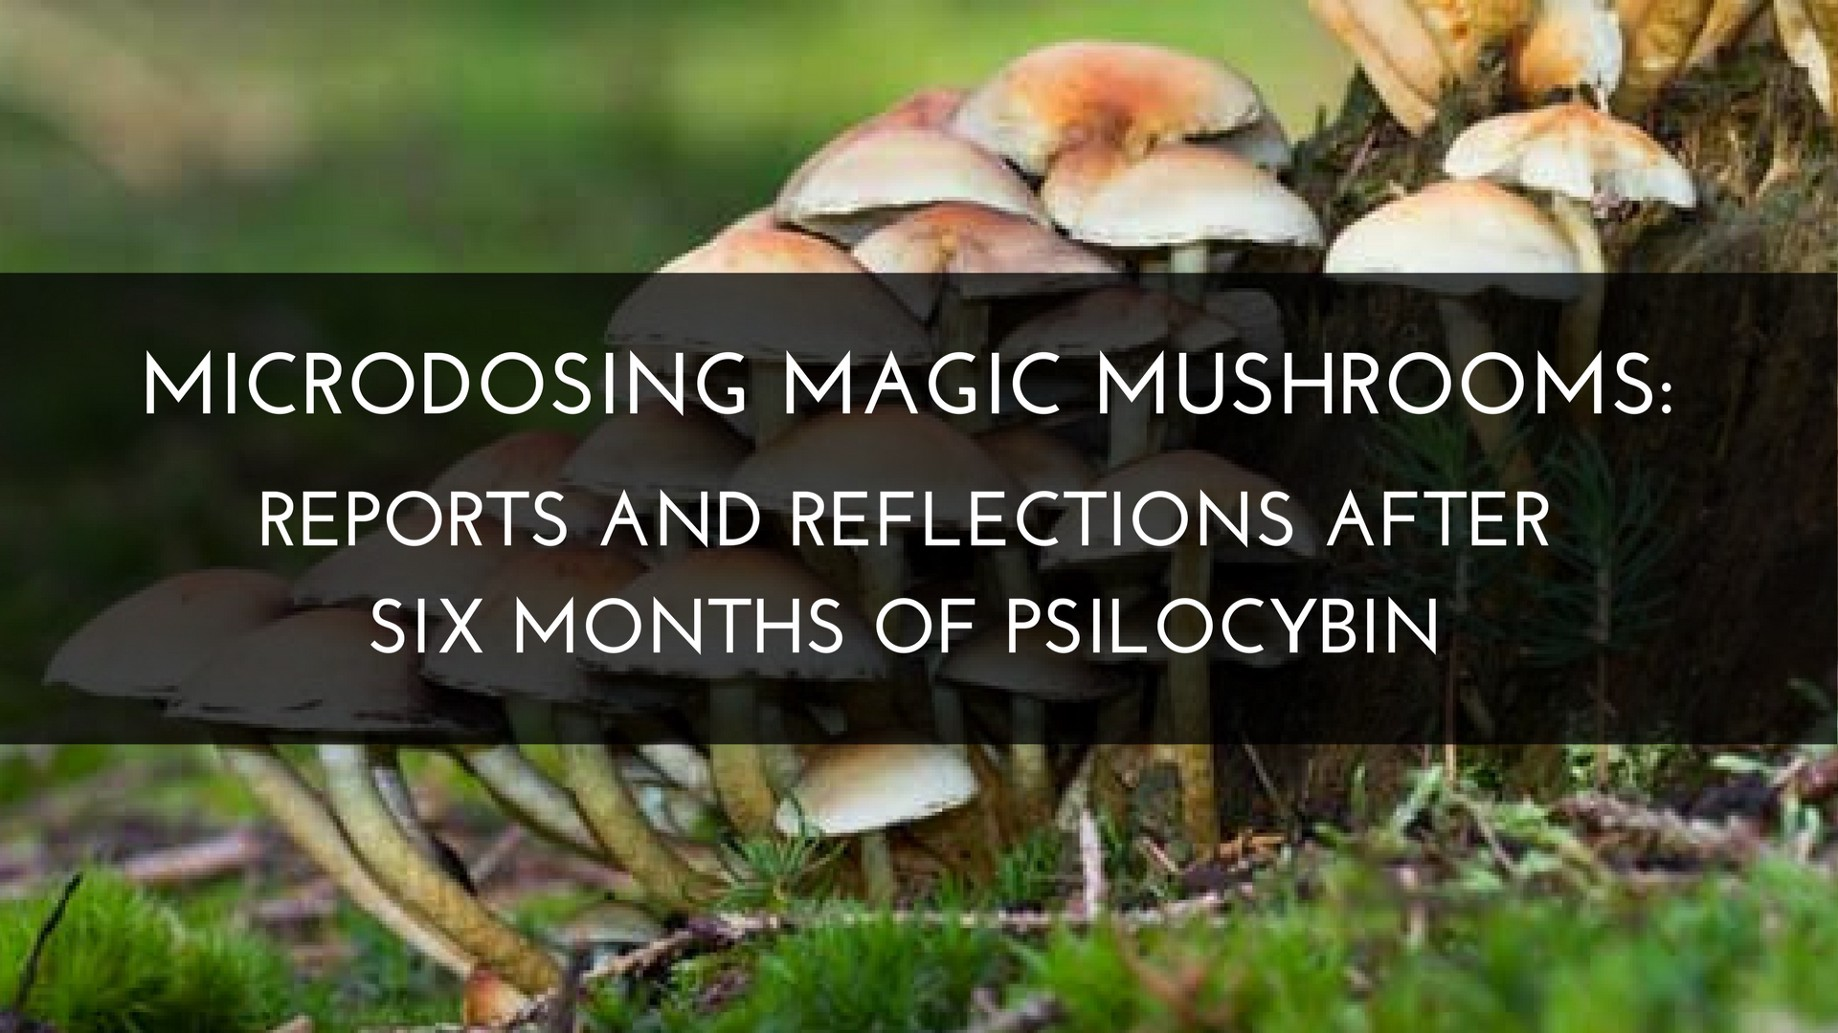 Microdosing Magic Mushrooms: Reports and Reflections after Six